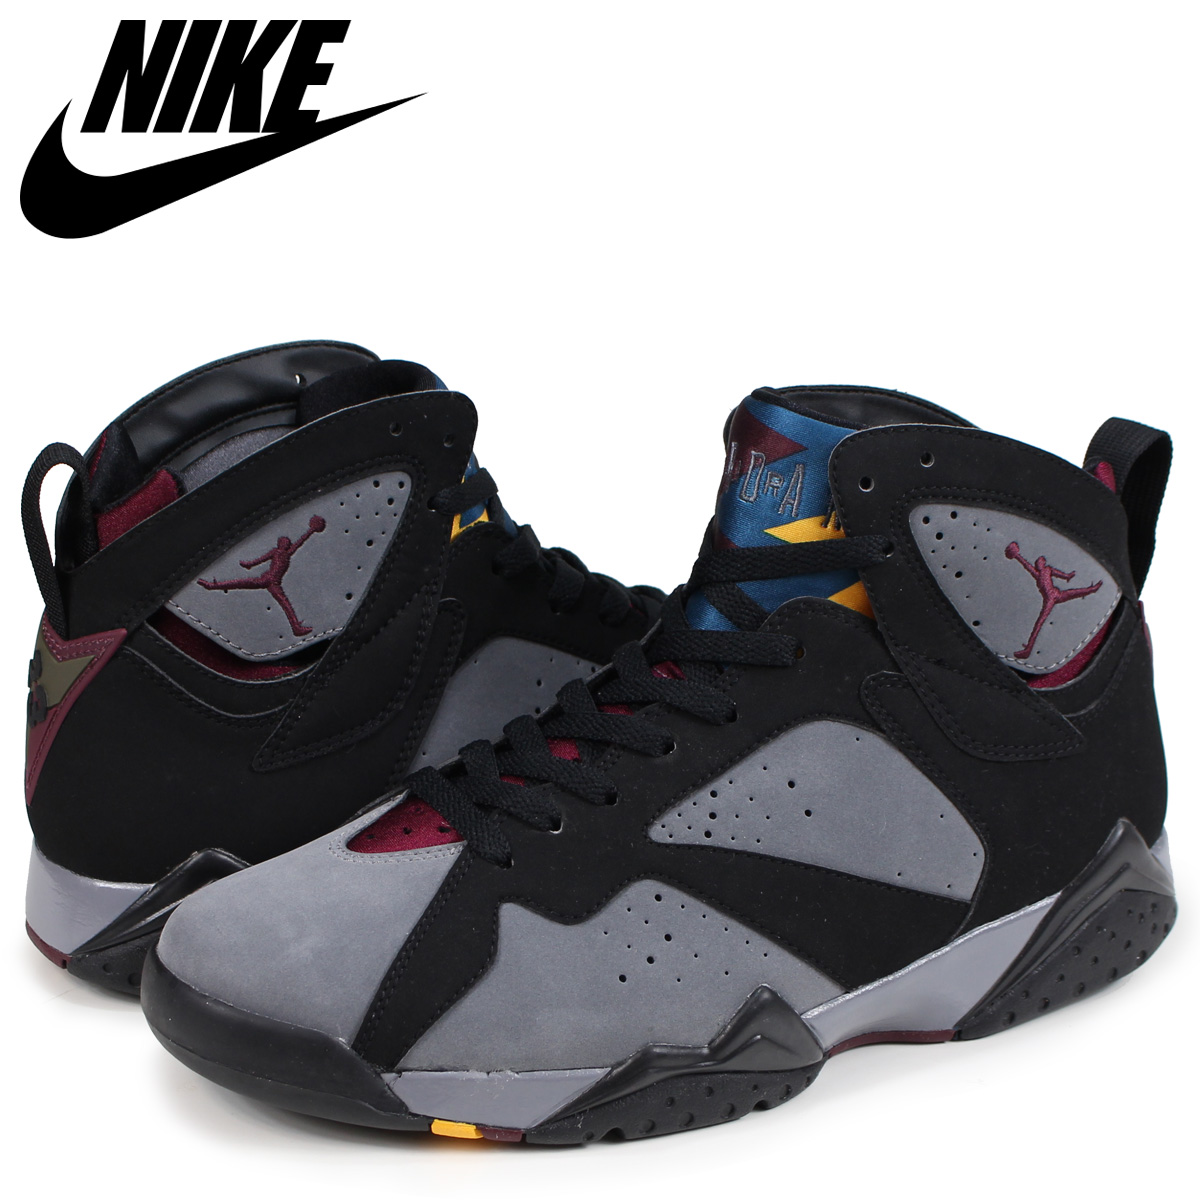 NIKE AIR JORDAN 7 RETRO Nike Air Jordan 7 nostalgic sneakers men 304,775 003 black [189]